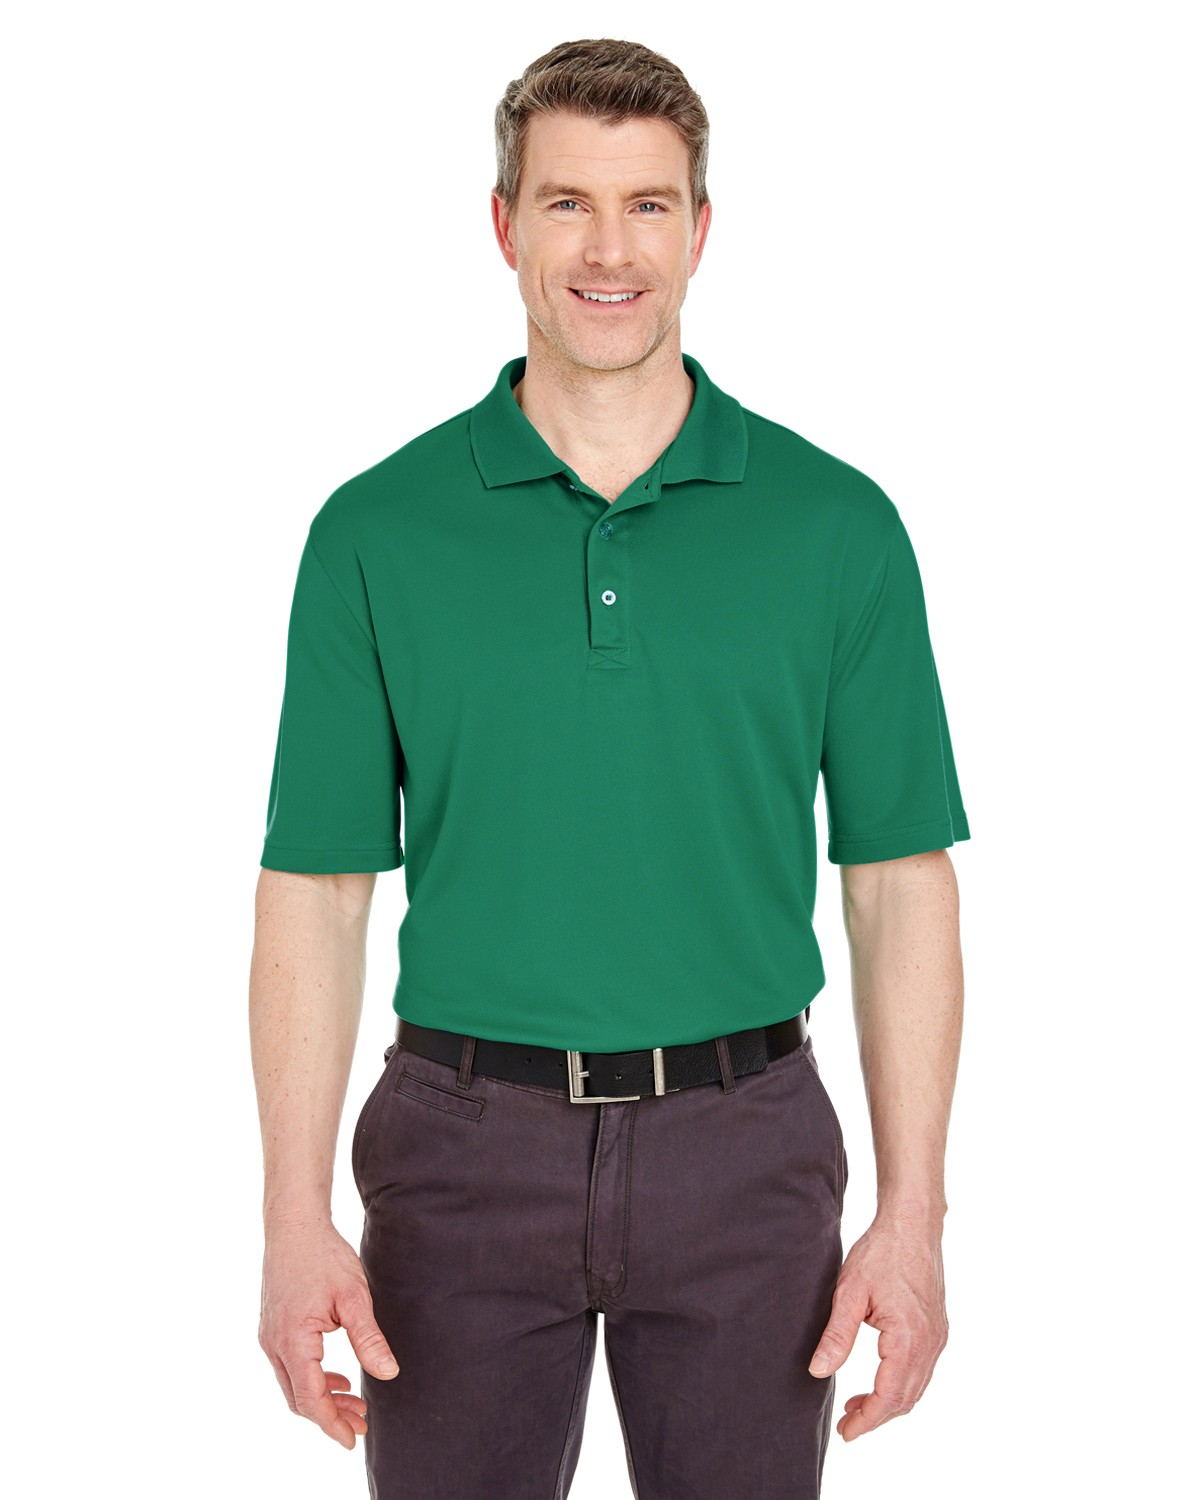 8405T UltraClub FOREST GREEN